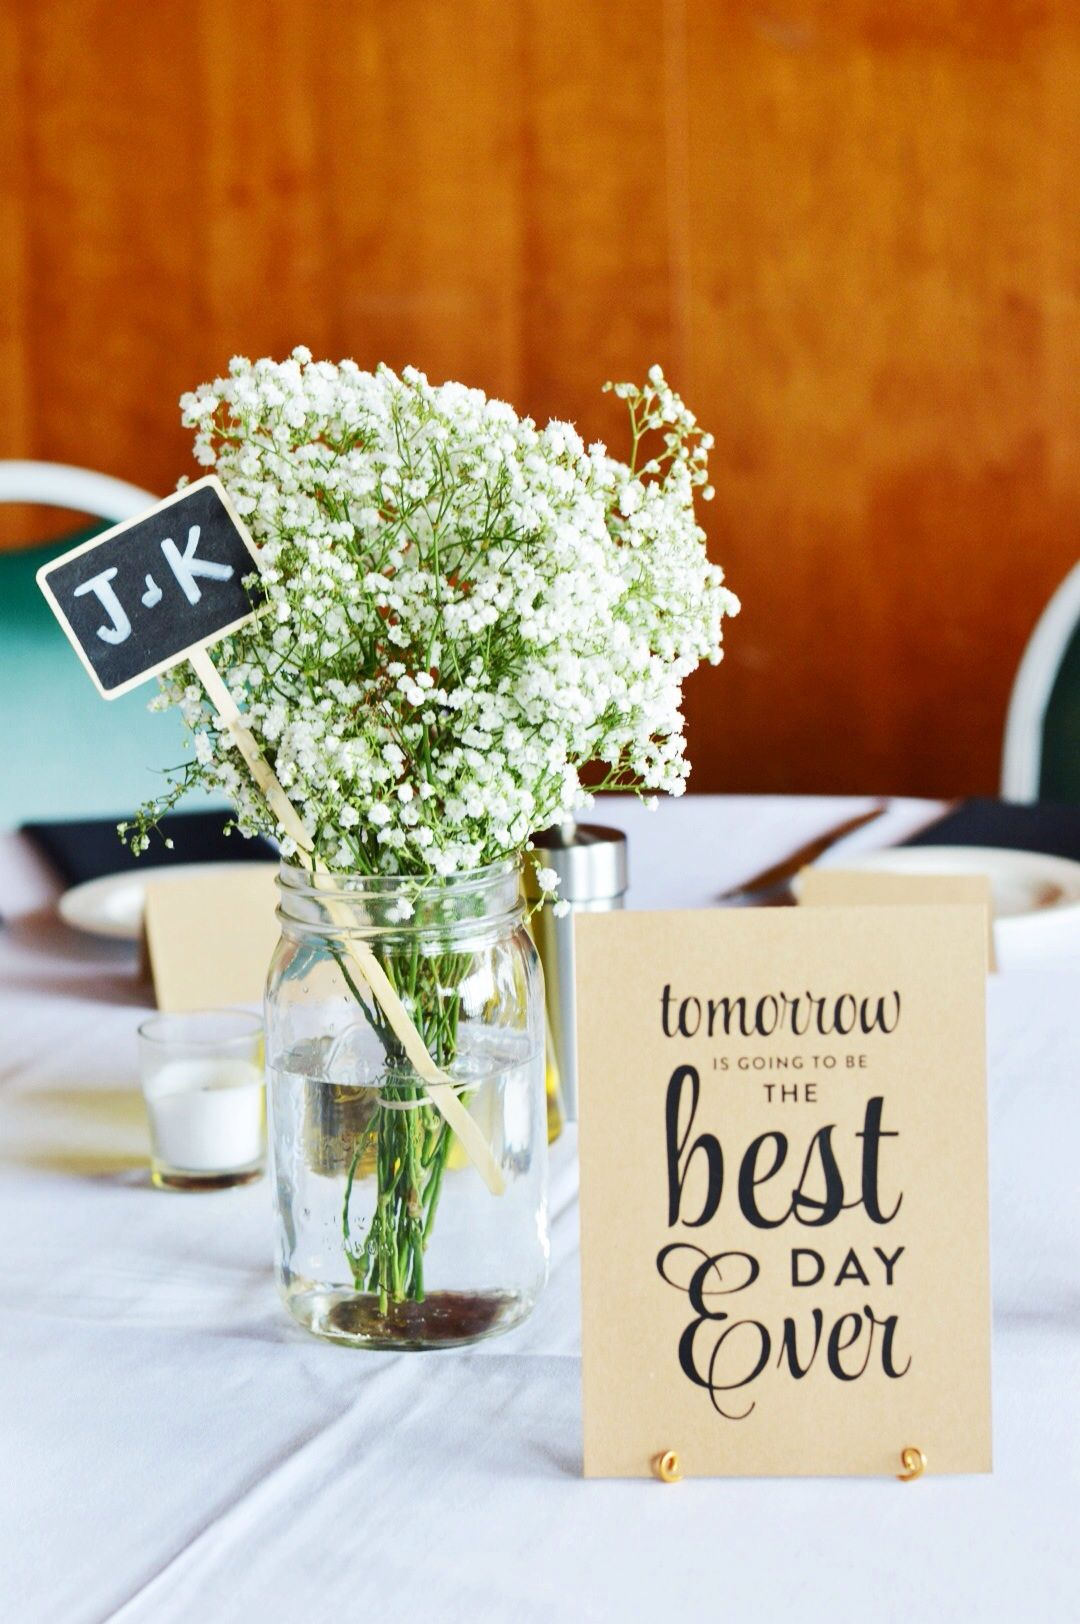 Rehearsal Dinner Decor | Pinterest | Rehearsal dinners, Centerpieces ...